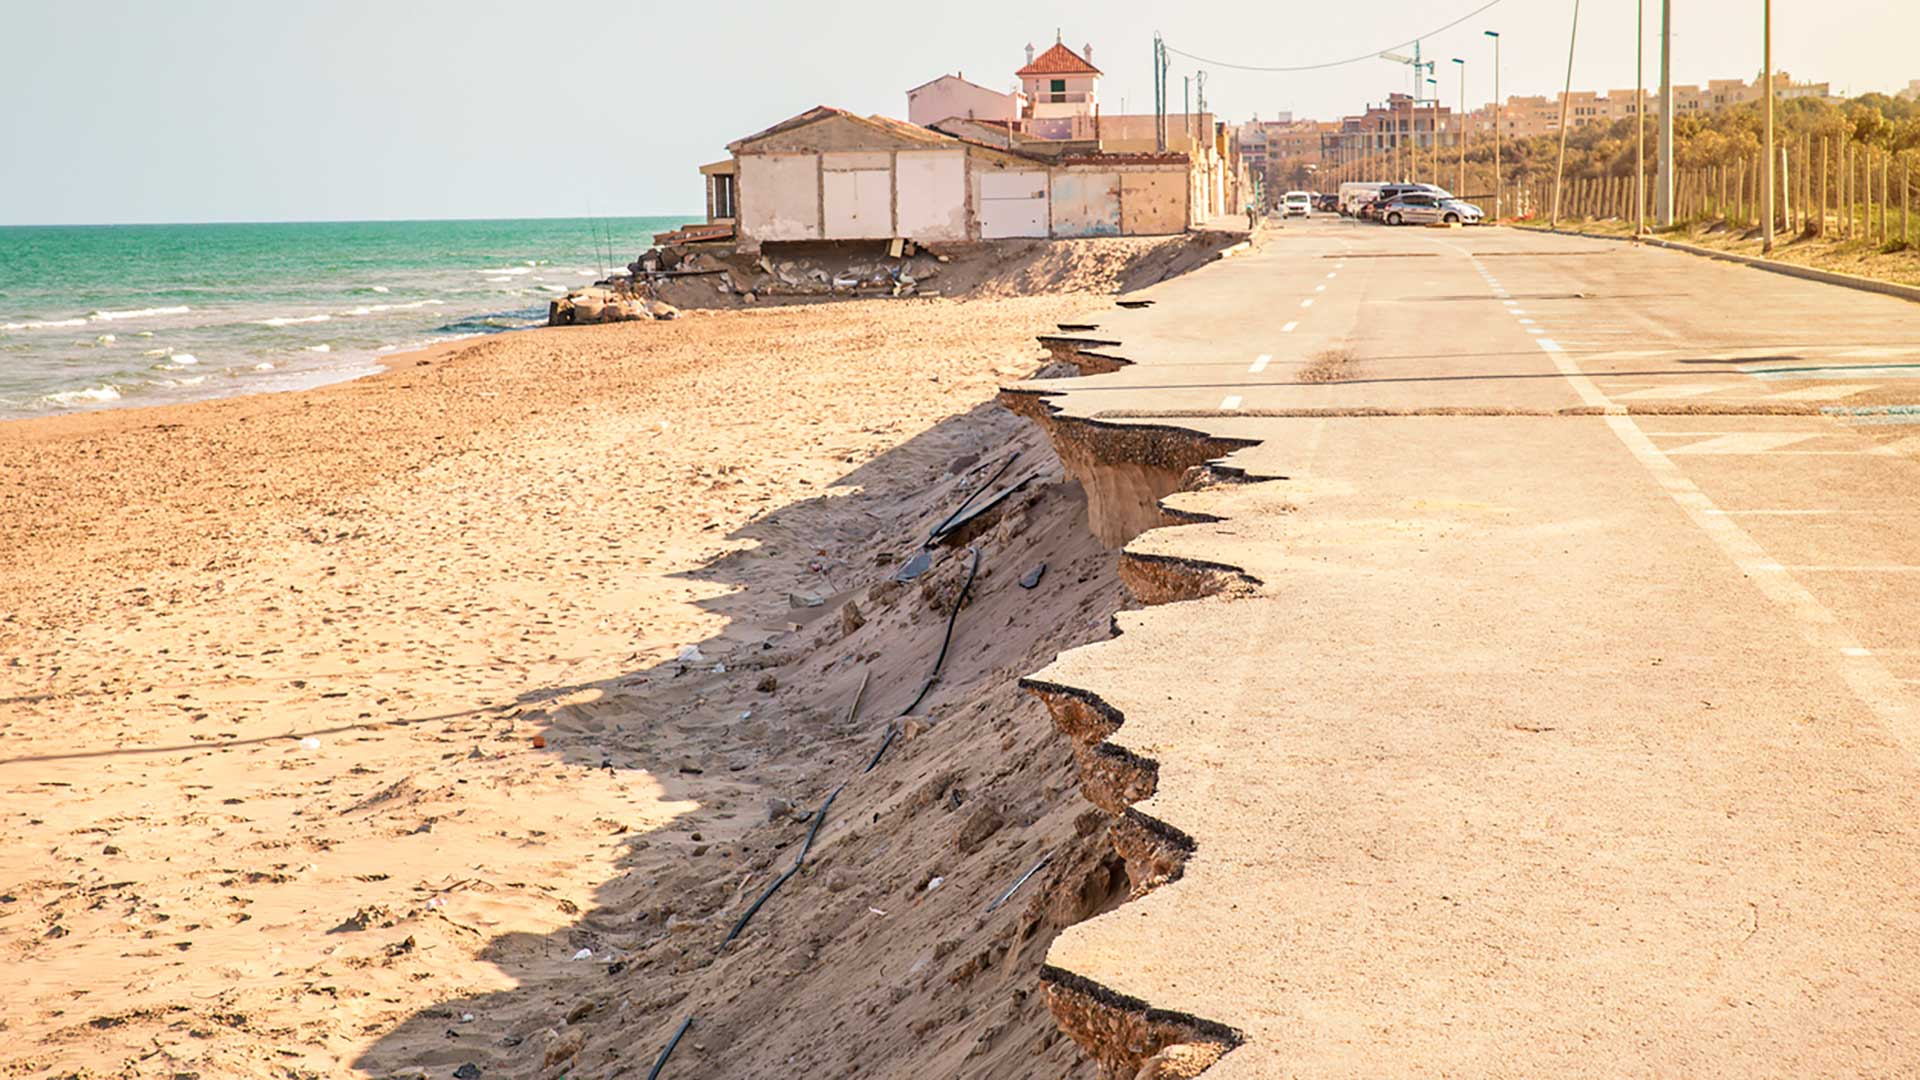 Beachfront highway erodes into the sand.